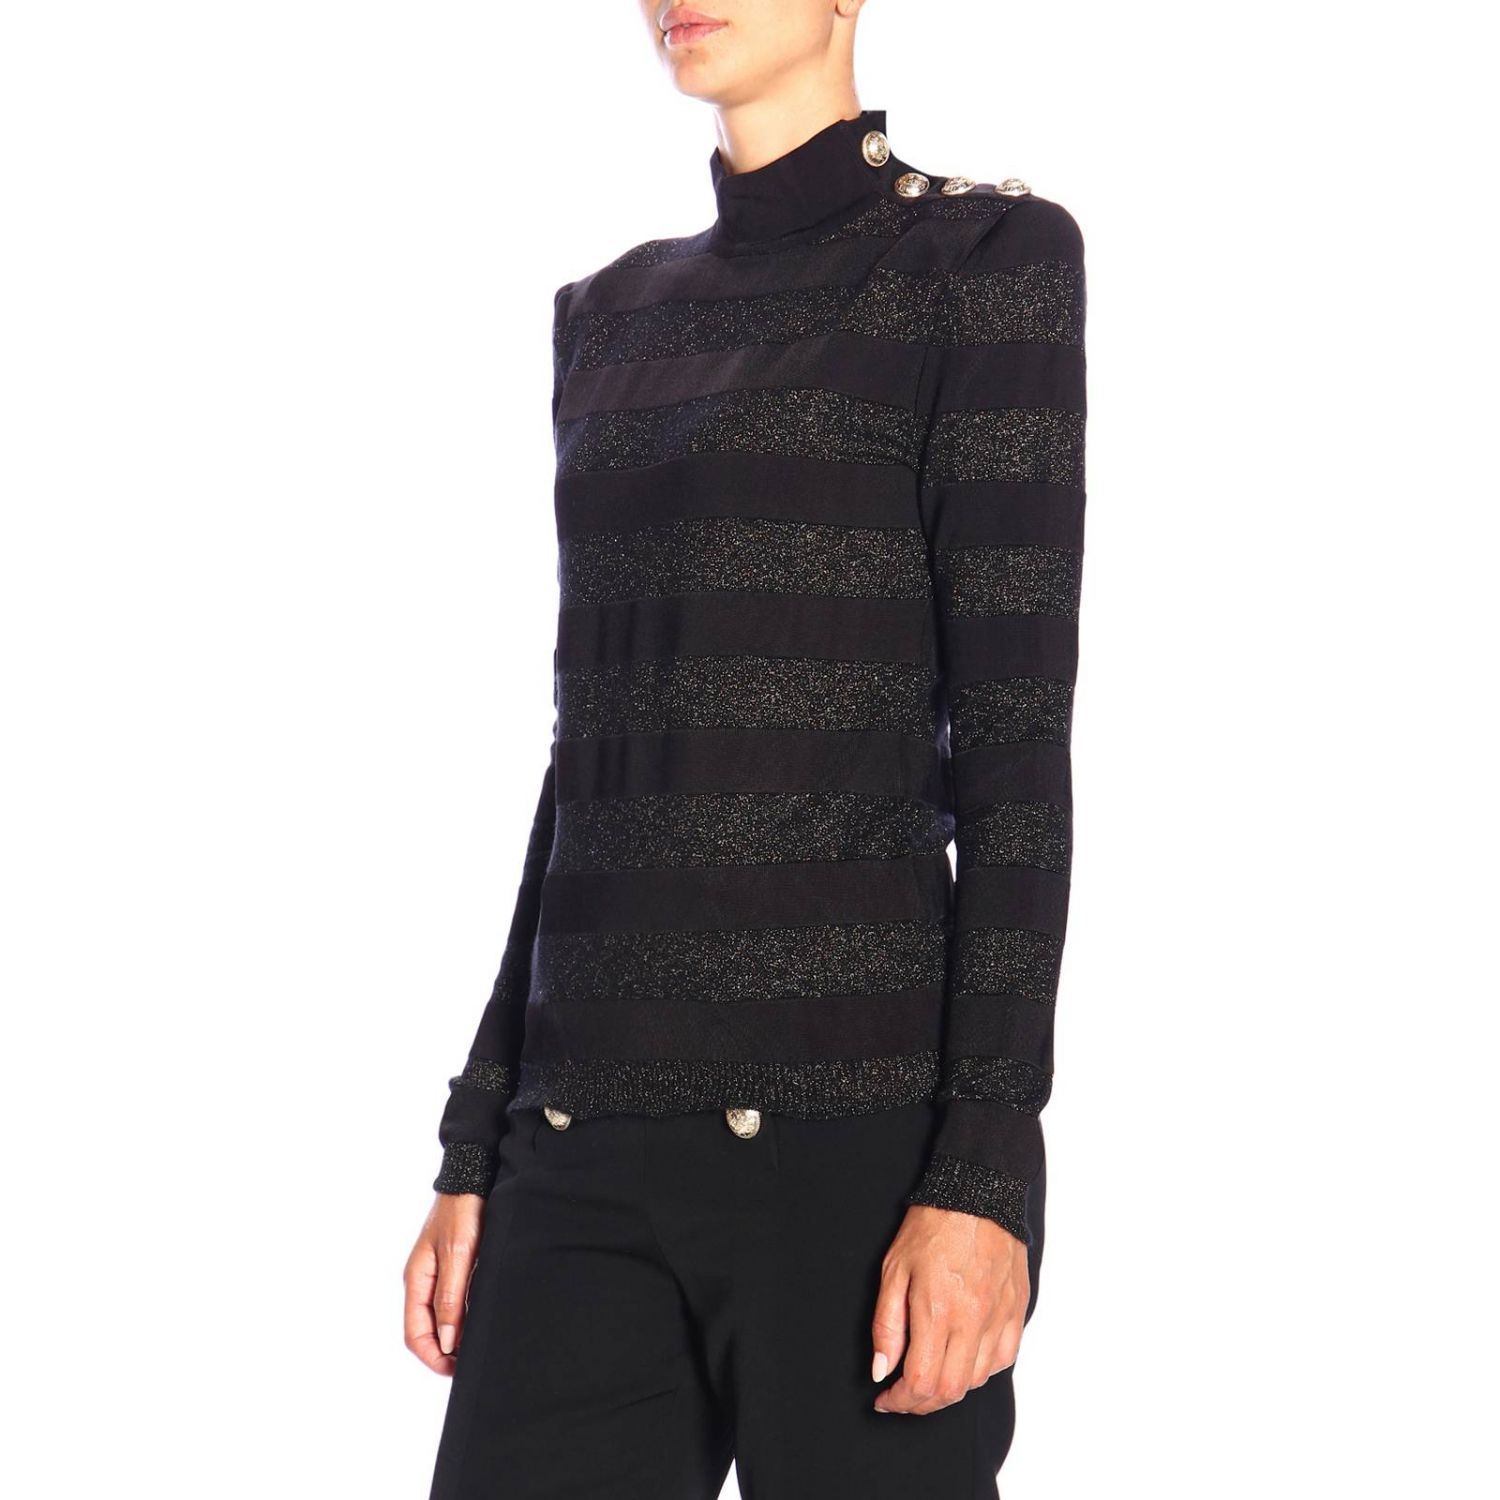 Jumper Balmain: Balmain turtleneck sweater with lurex bands and jewel buttons black 4